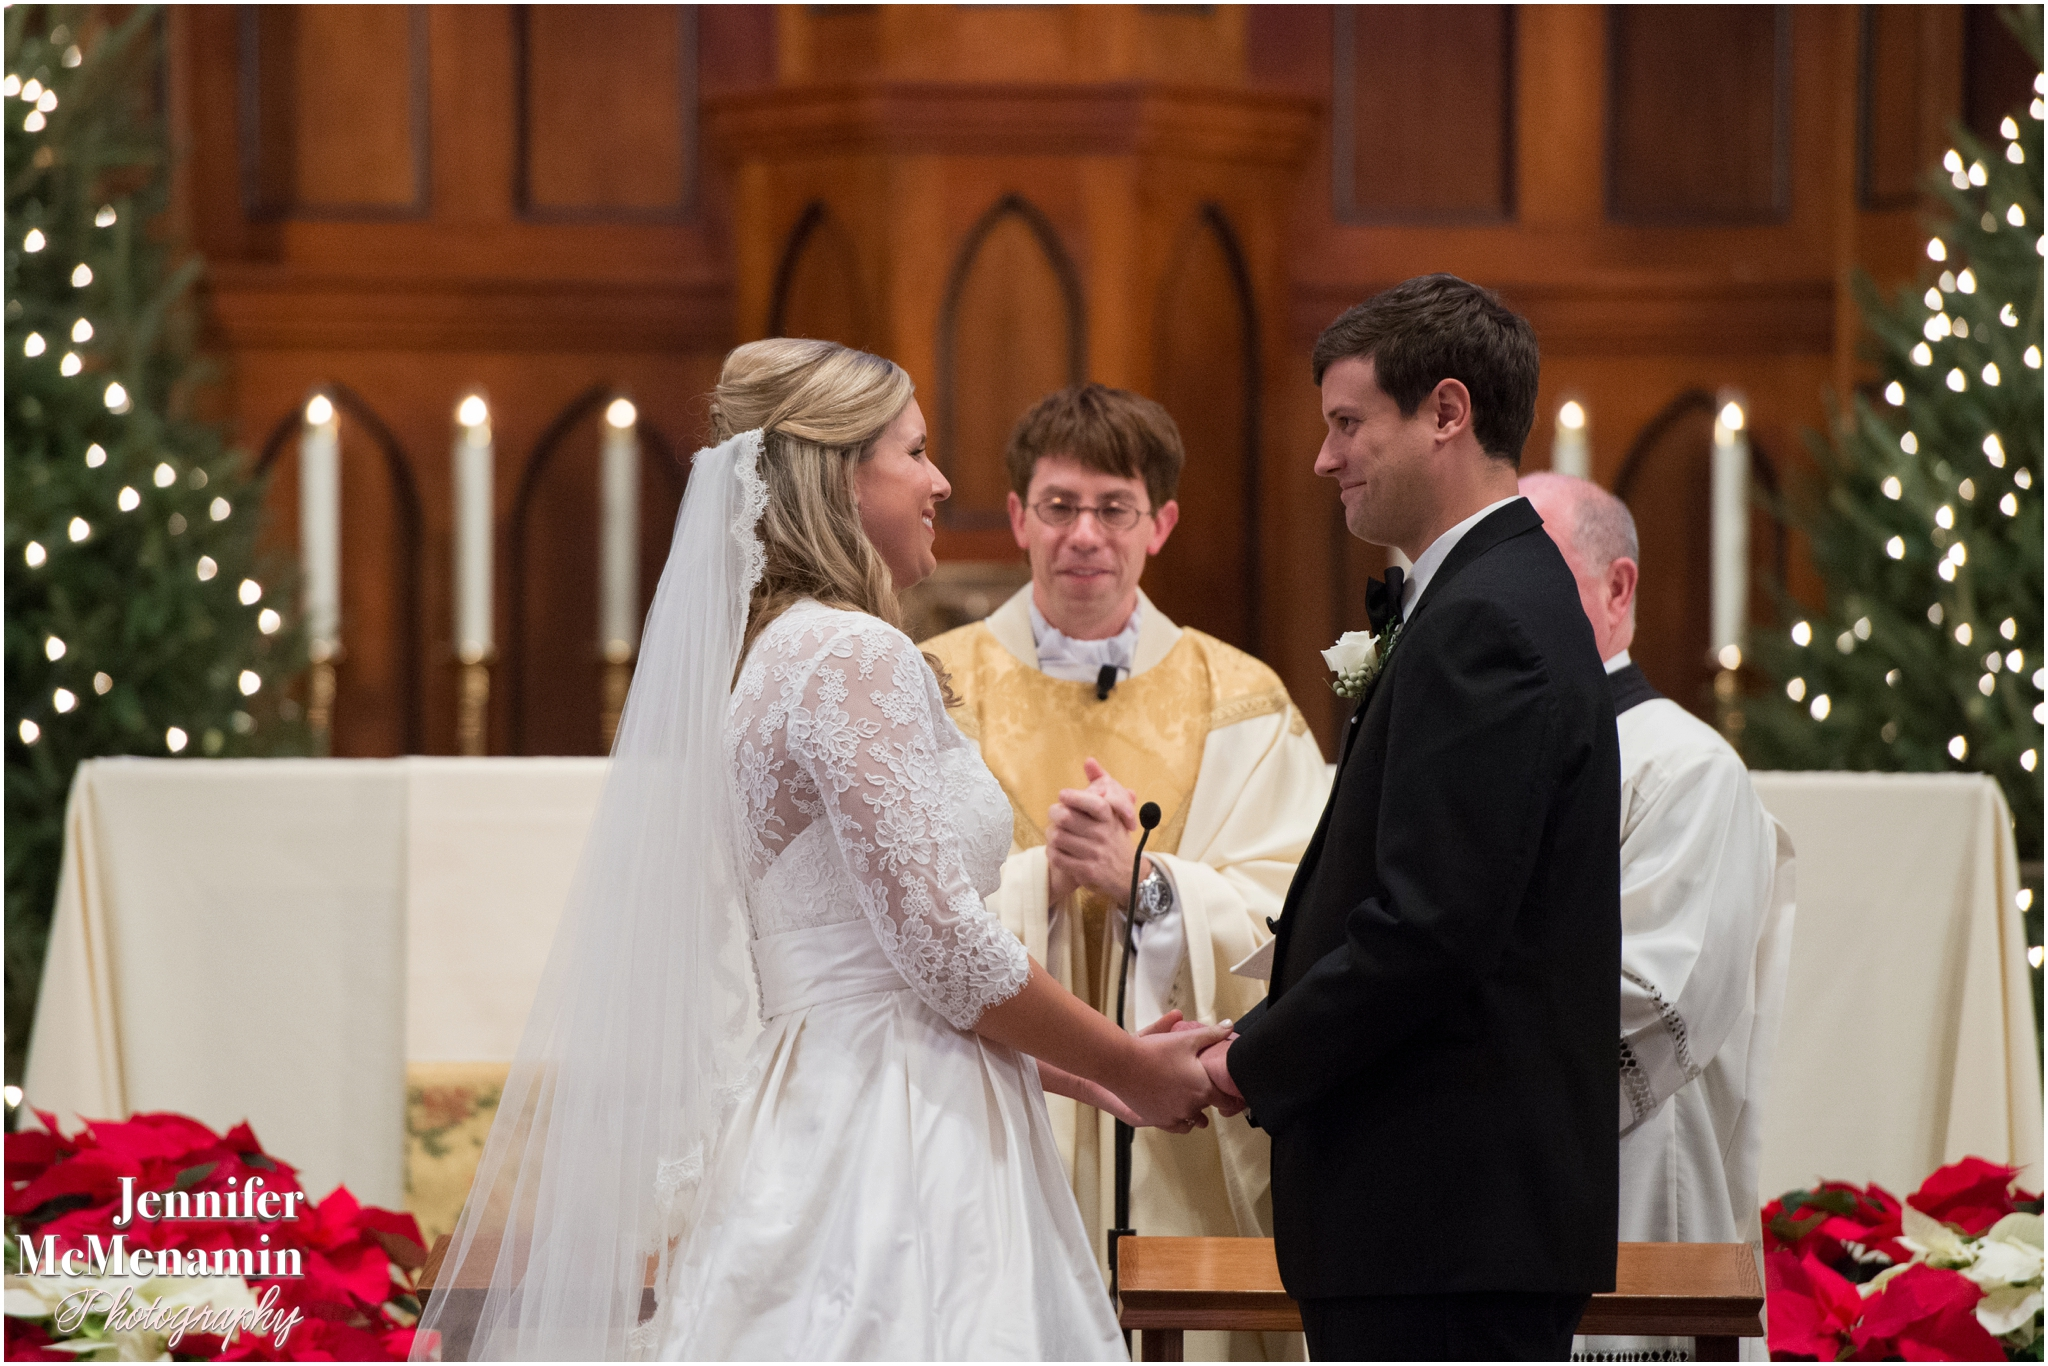 0047_RyanClemmens_01327-0355_JenniferMcMenaminPhotography_Immaculate-Conception-Church_The-Cloisters_Baltimore-wedding-photography_Baltimore-wedding-photographer